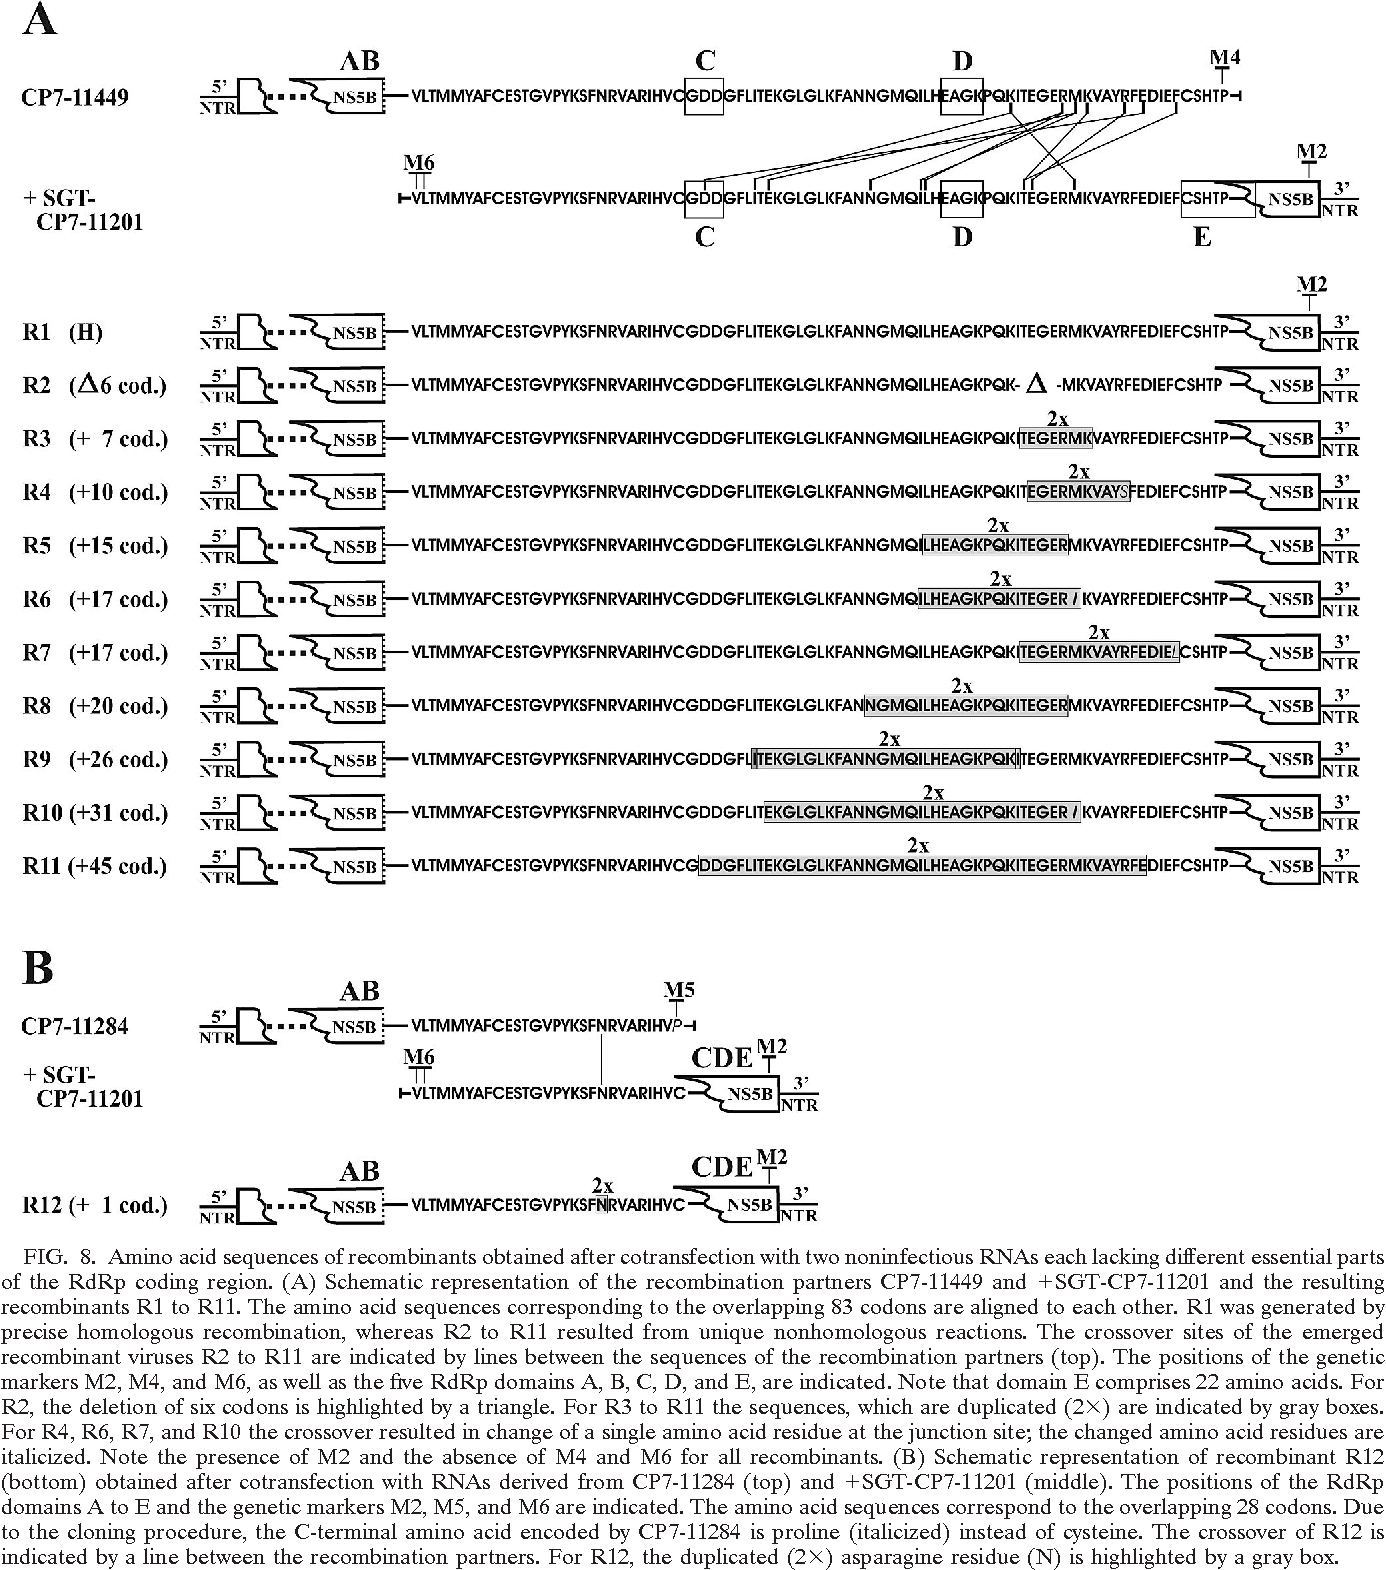 FIG. 8. Amino acid sequences of recombinants obtained after cotransfection with two noninfectious RNAs each lacking different essential parts of the RdRp coding region. (A) Schematic representation of the recombination partners CP7-11449 and SGT-CP7-11201 and the resulting recombinants R1 to R11. The amino acid sequences corresponding to the overlapping 83 codons are aligned to each other. R1 was generated by precise homologous recombination, whereas R2 to R11 resulted from unique nonhomologous reactions. The crossover sites of the emerged recombinant viruses R2 to R11 are indicated by lines between the sequences of the recombination partners (top). The positions of the genetic markers M2, M4, and M6, as well as the five RdRp domains A, B, C, D, and E, are indicated. Note that domain E comprises 22 amino acids. For R2, the deletion of six codons is highlighted by a triangle. For R3 to R11 the sequences, which are duplicated (2 ) are indicated by gray boxes. For R4, R6, R7, and R10 the crossover resulted in change of a single amino acid residue at the junction site; the changed amino acid residues are italicized. Note the presence of M2 and the absence of M4 and M6 for all recombinants. (B) Schematic representation of recombinant R12 (bottom) obtained after cotransfection with RNAs derived from CP7-11284 (top) and SGT-CP7-11201 (middle). The positions of the RdRp domains A to E and the genetic markers M2, M5, and M6 are indicated. The amino acid sequences correspond to the overlapping 28 codons. Due to the cloning procedure, the C-terminal amino acid encoded by CP7-11284 is proline (italicized) instead of cysteine. The crossover of R12 is indicated by a line between the recombination partners. For R12, the duplicated (2 ) asparagine residue (N) is highlighted by a gray box.